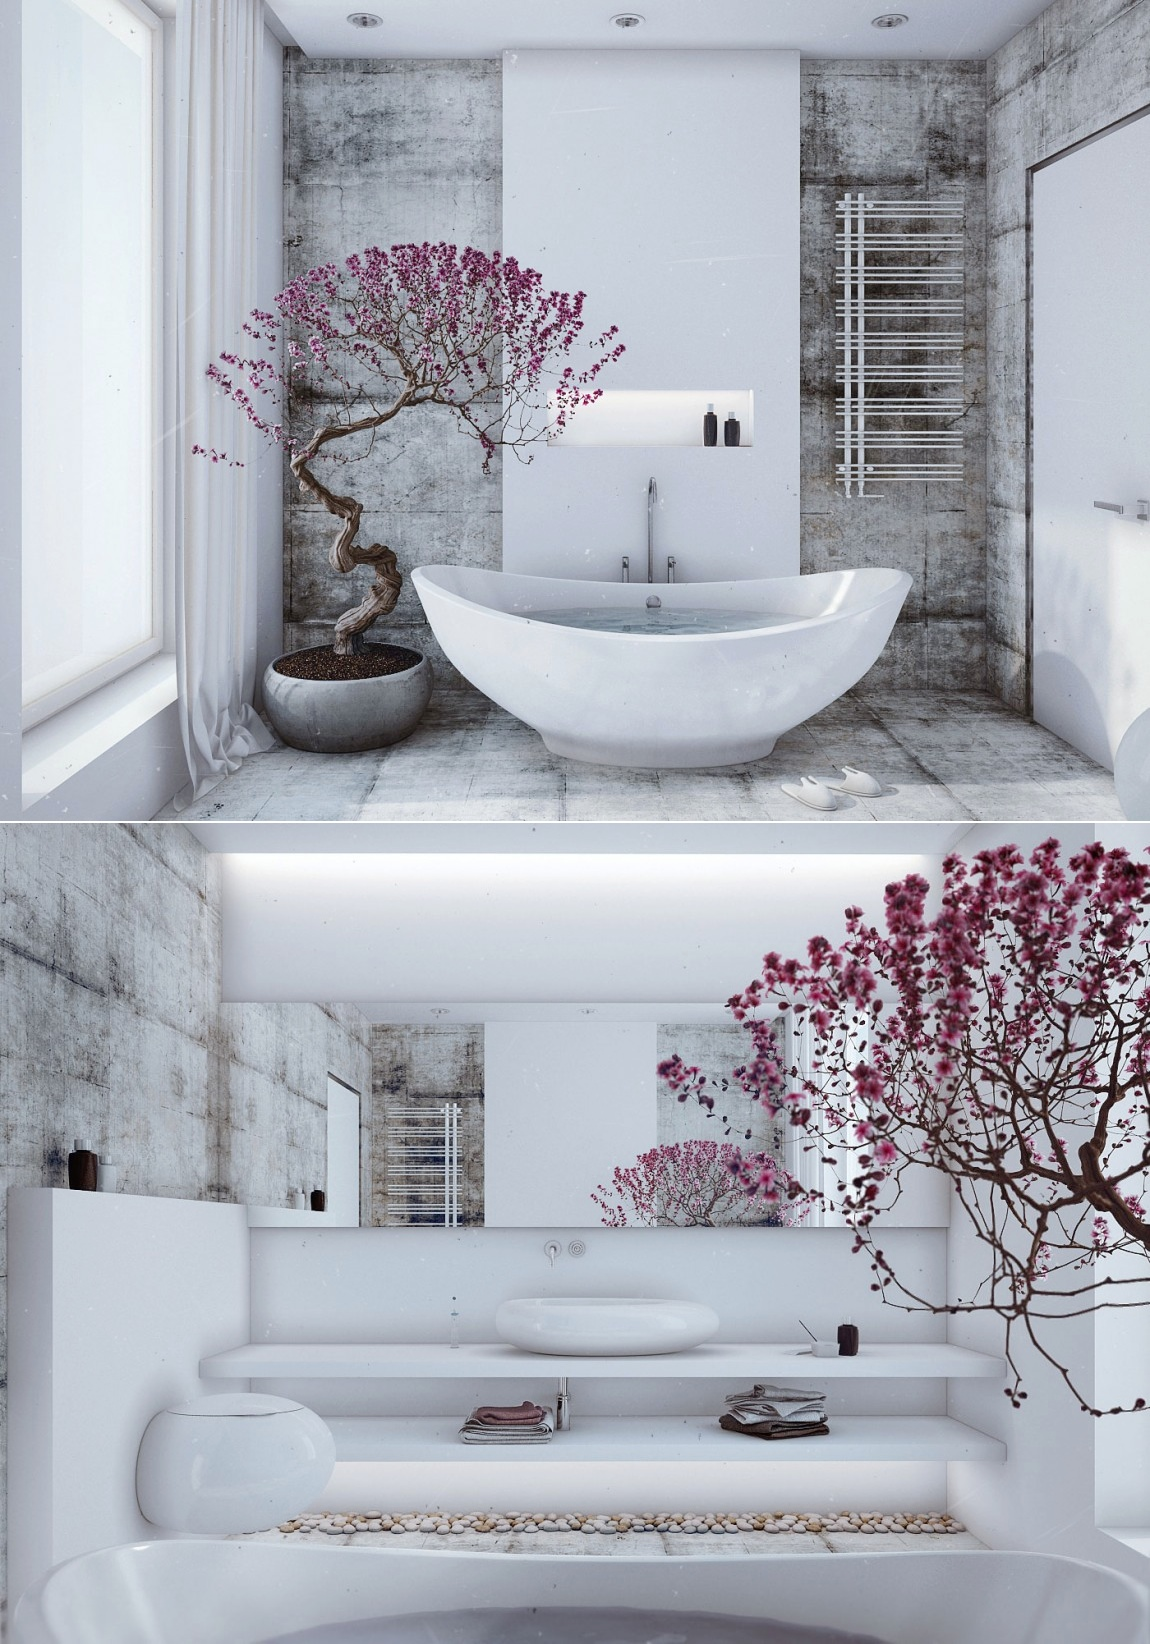 Zen bathroom design interior design ideas for Home decor zen